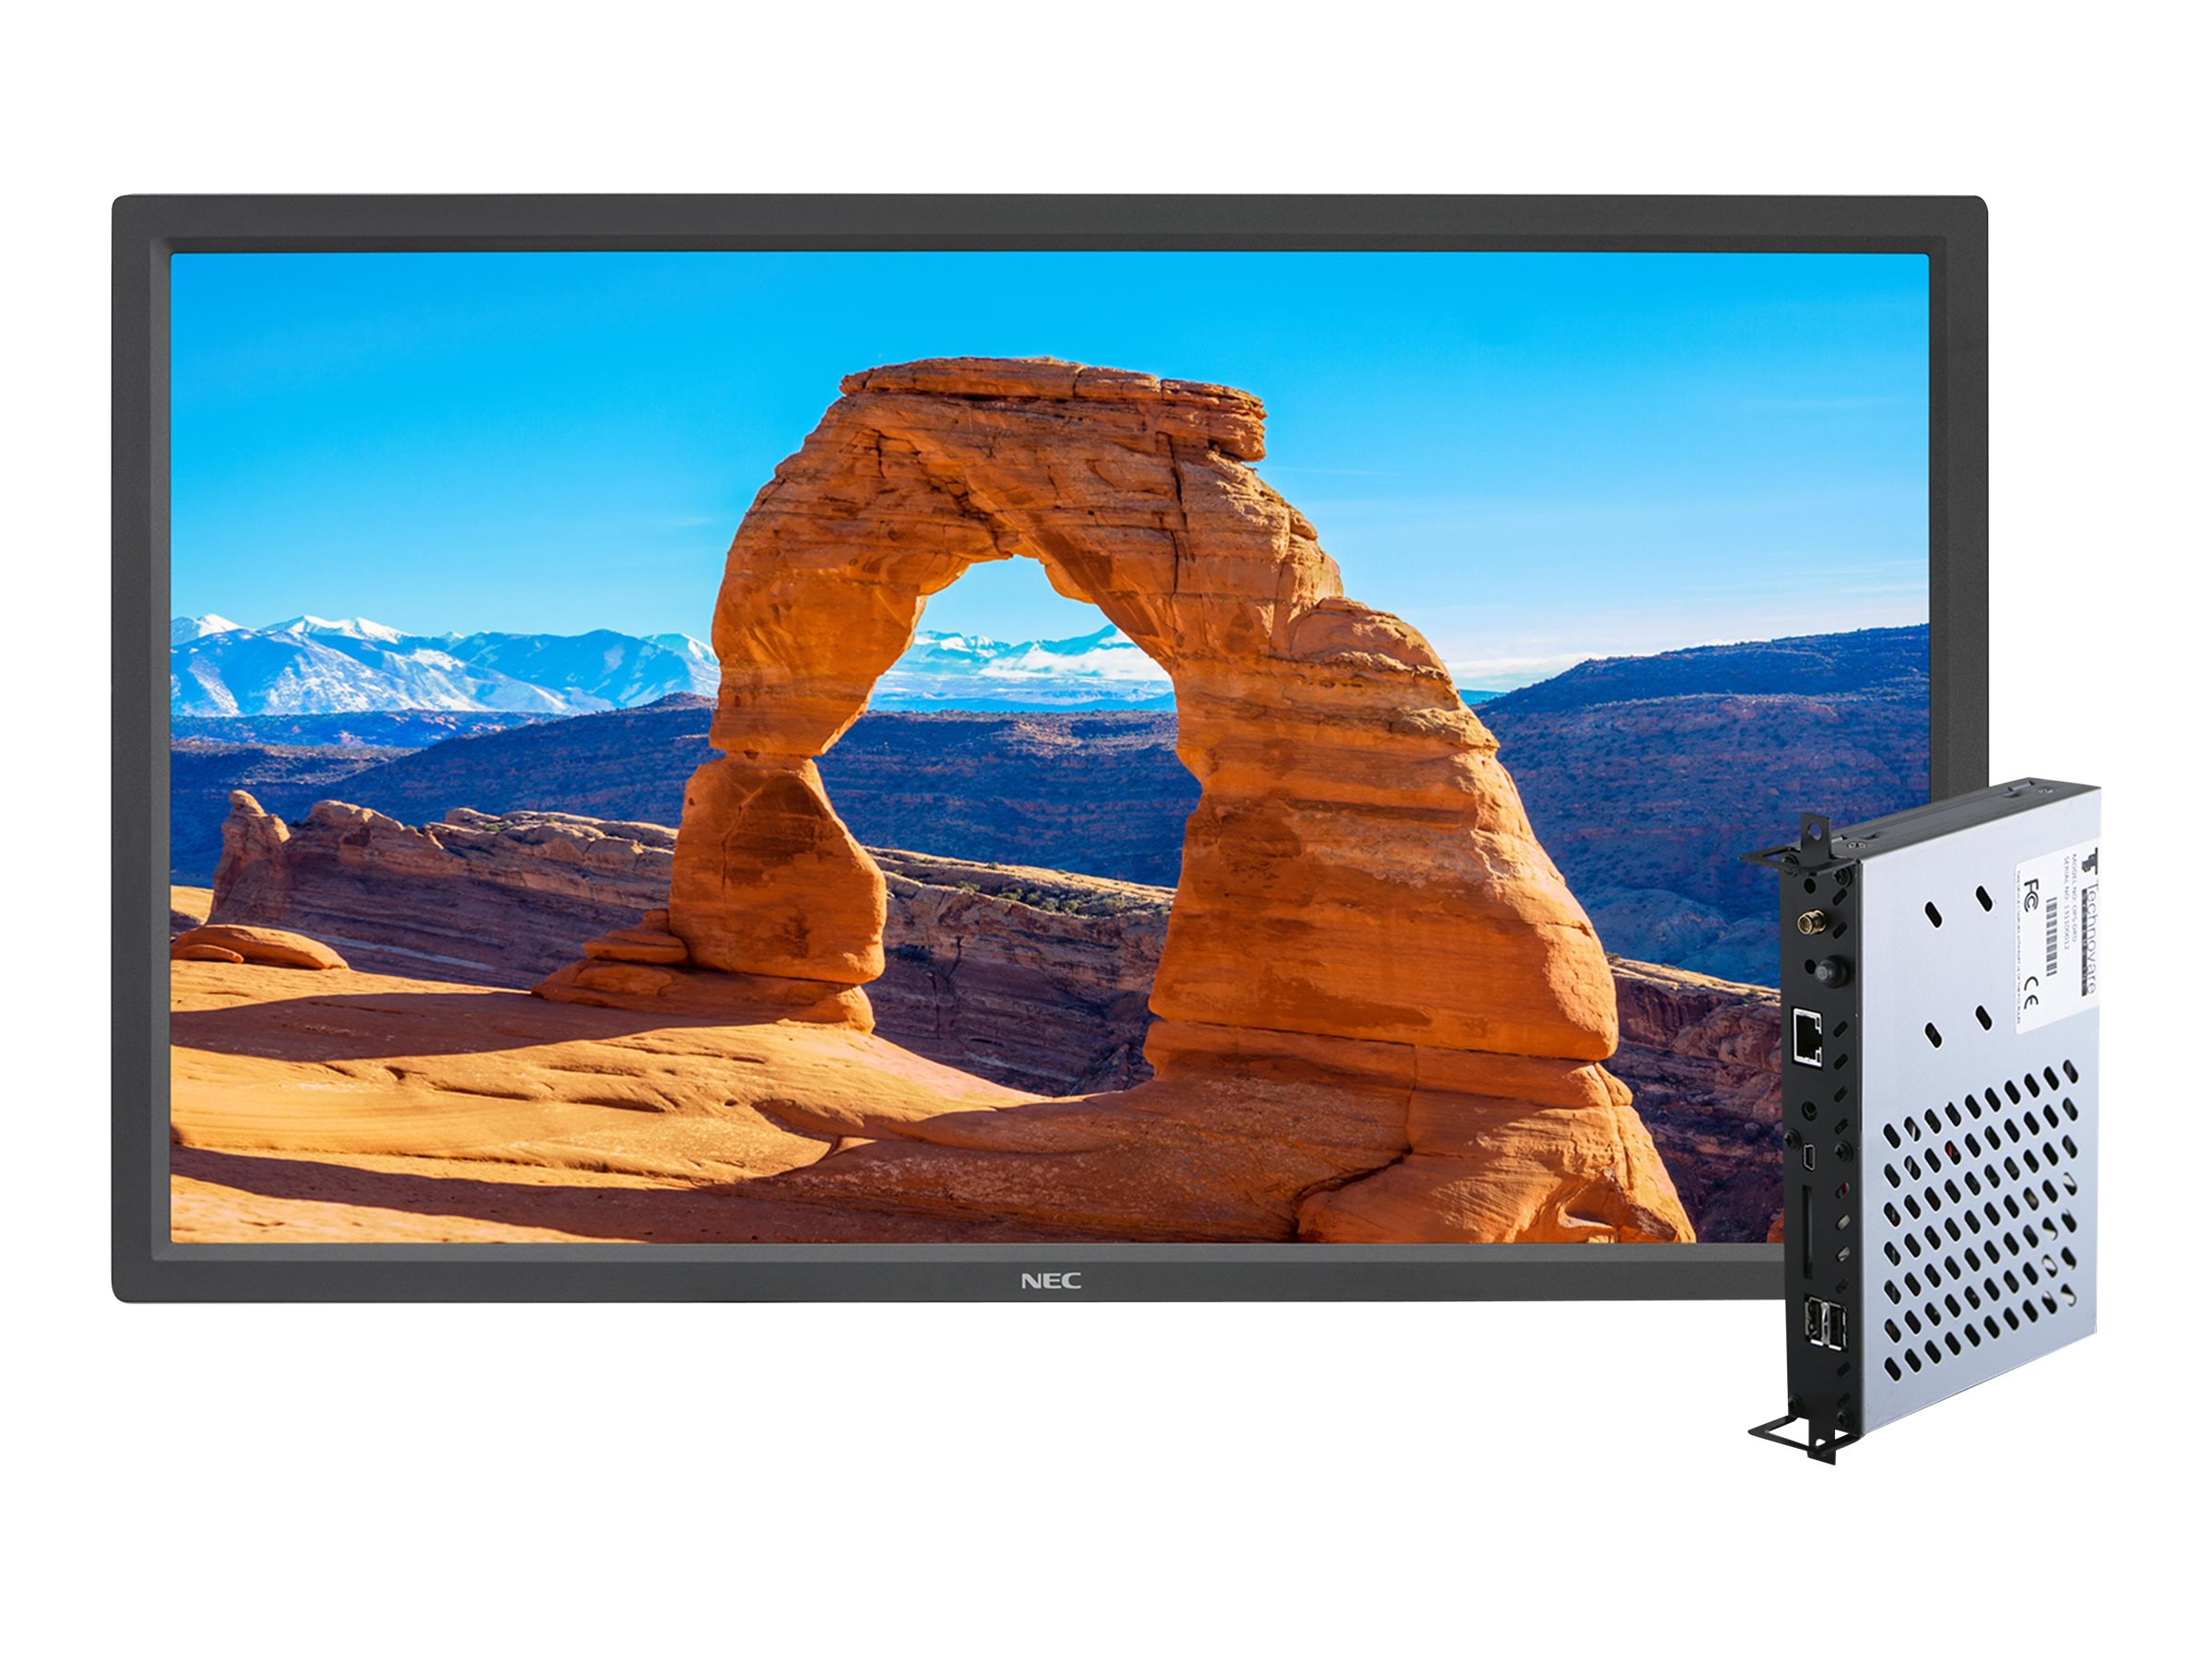 NEC 32 V323 Full HD LED-LCD Display with Integrated Digital Media Player, V323-2-DRD